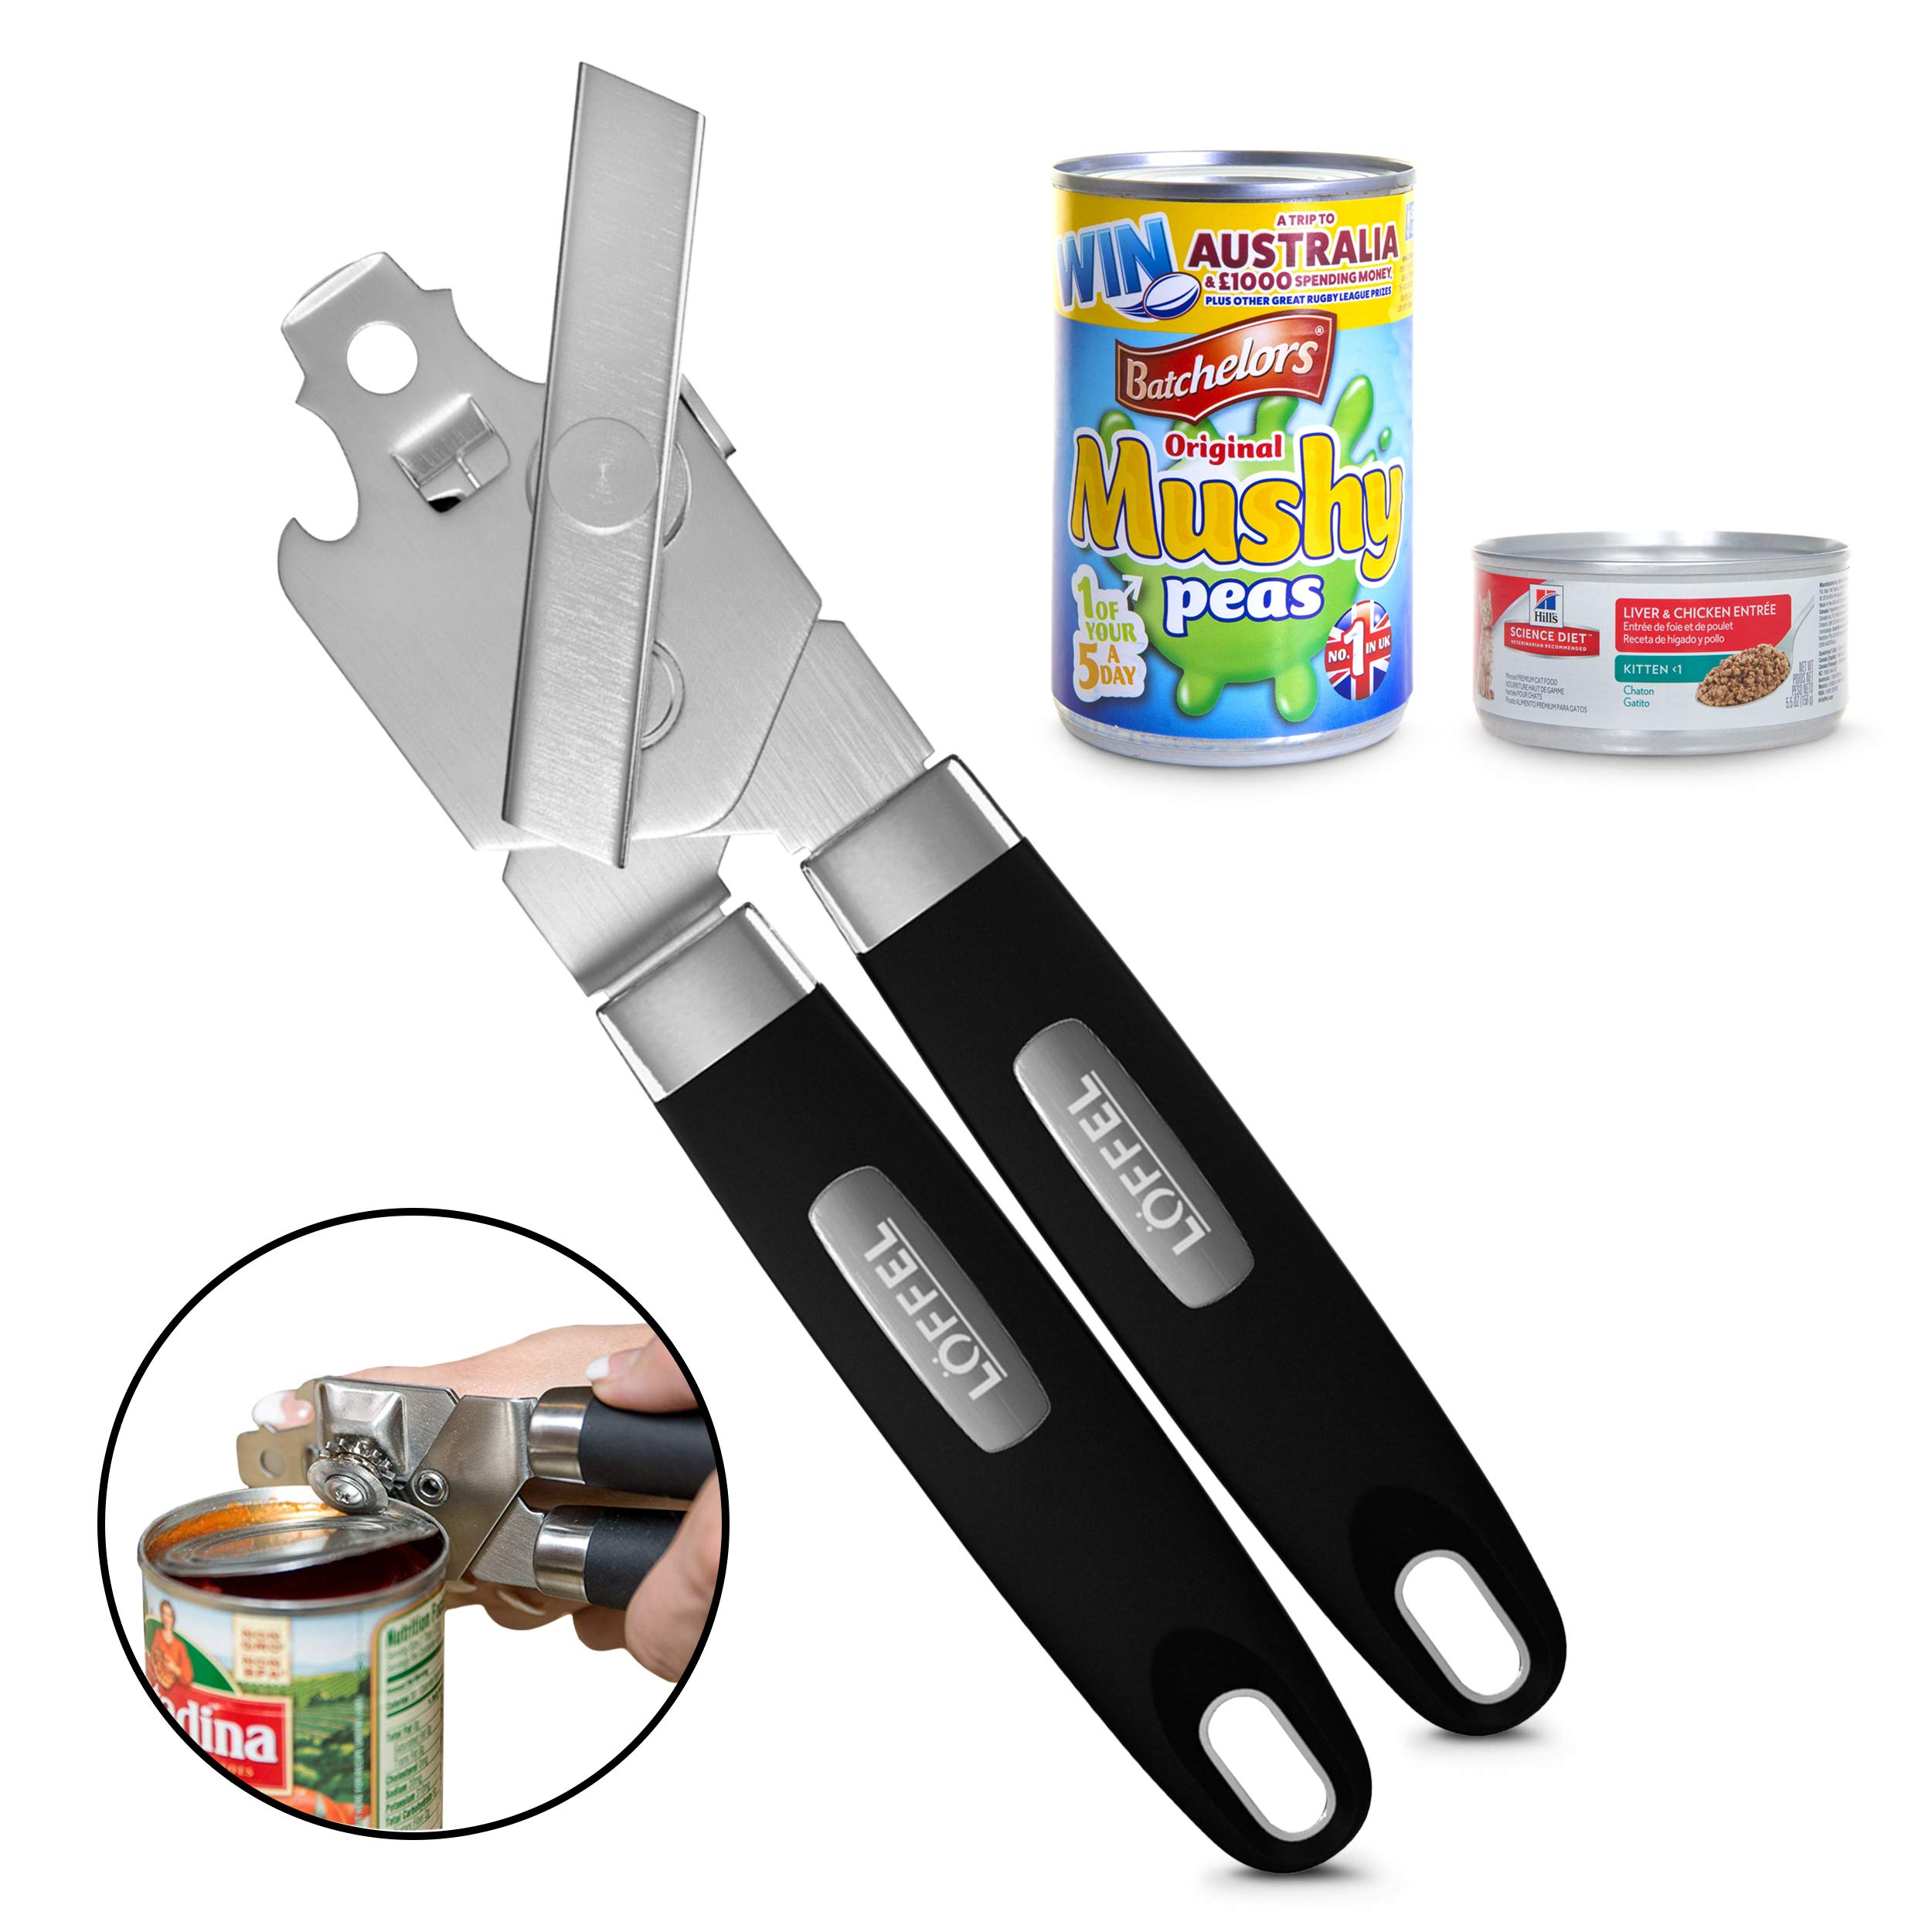 Stainless Steel Manual Can Opener – Tin Can Opener with Non-Slip Safety Grip for Seniors with Arthritis – Made of Heavy Duty Industrial Materials for Smooth Portable Kitchen Cooking and Can Opening